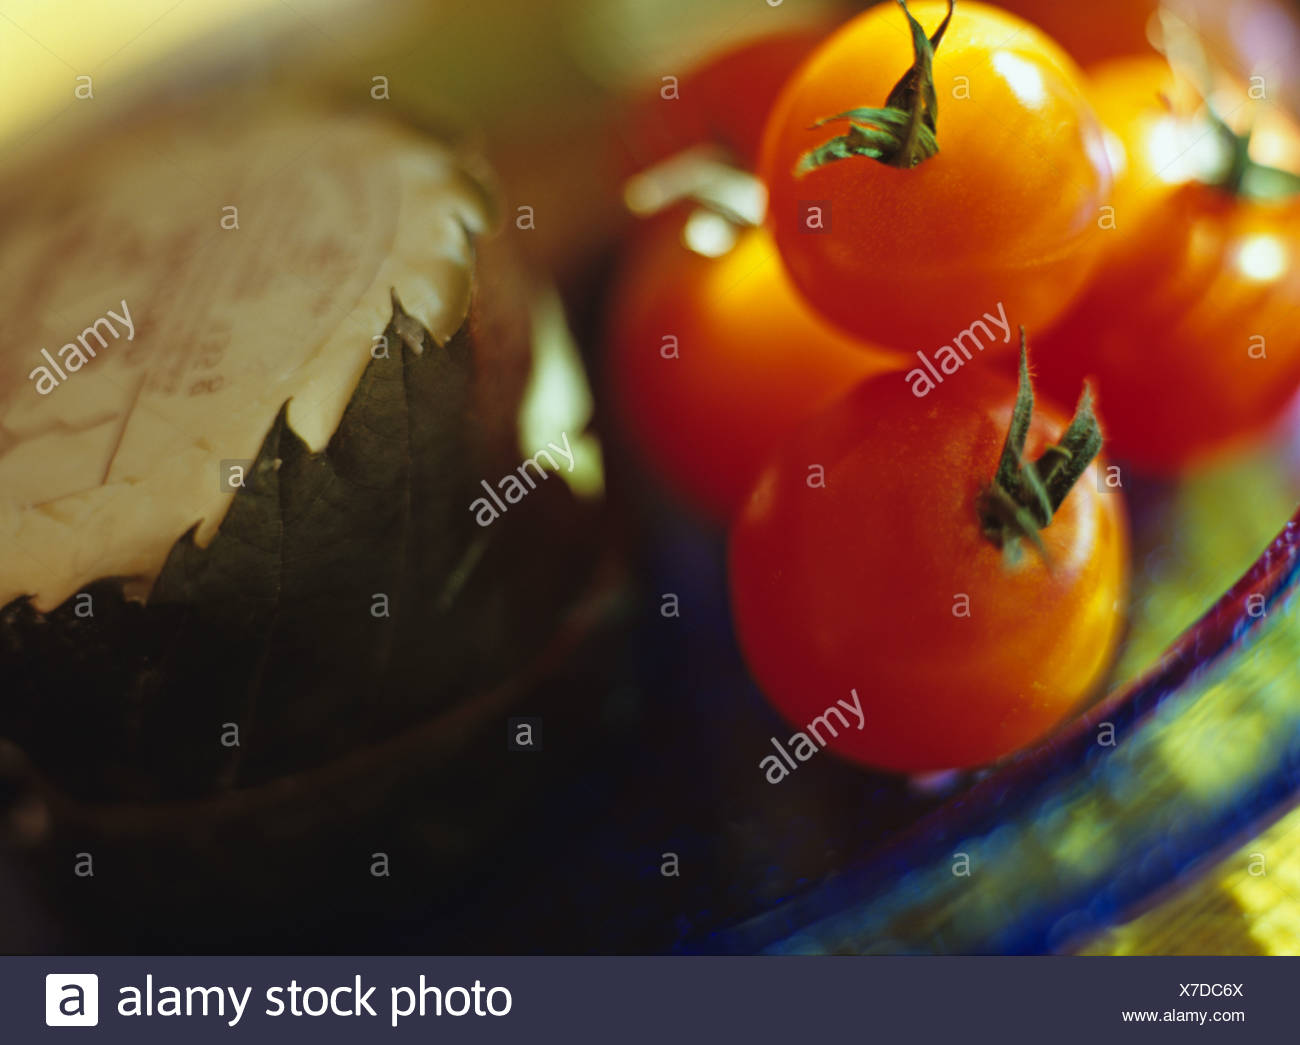 Cherry tomatoes and cheese - Stock Image